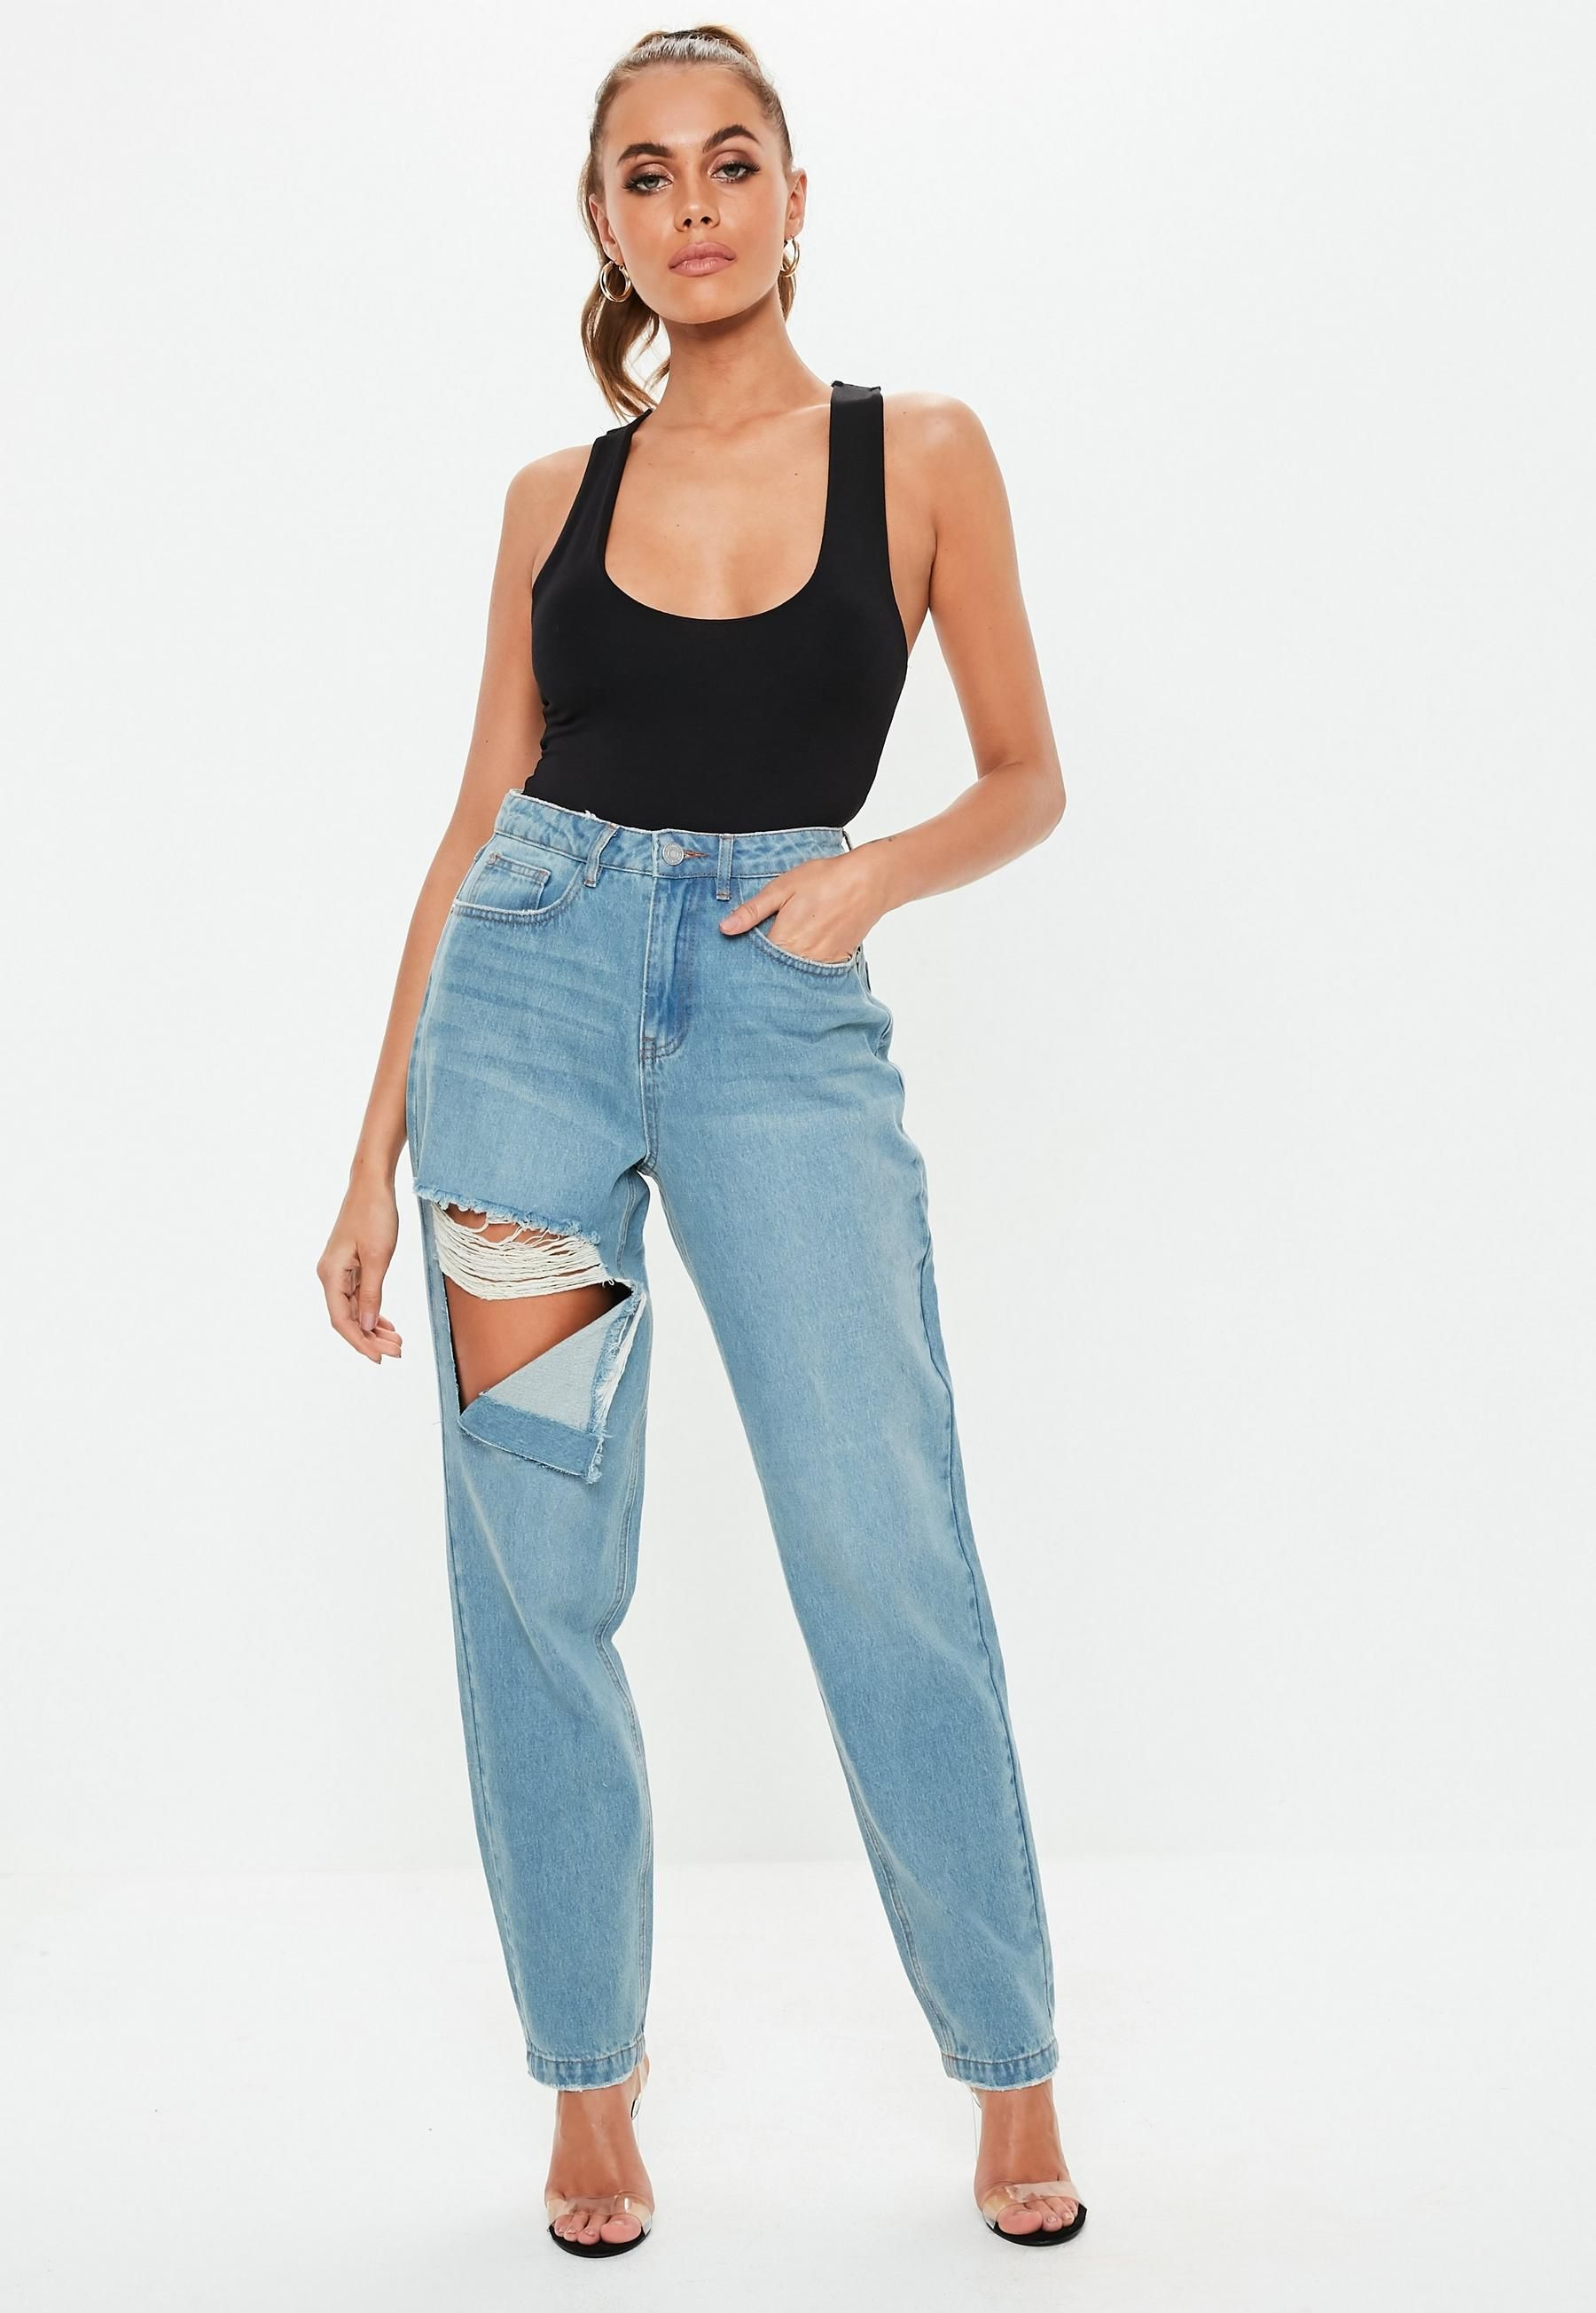 a6042226011d70 Petite Blue Riot Stone Wash Ripped Thigh High Waisted Mom Rigid Jeans |  Missguided